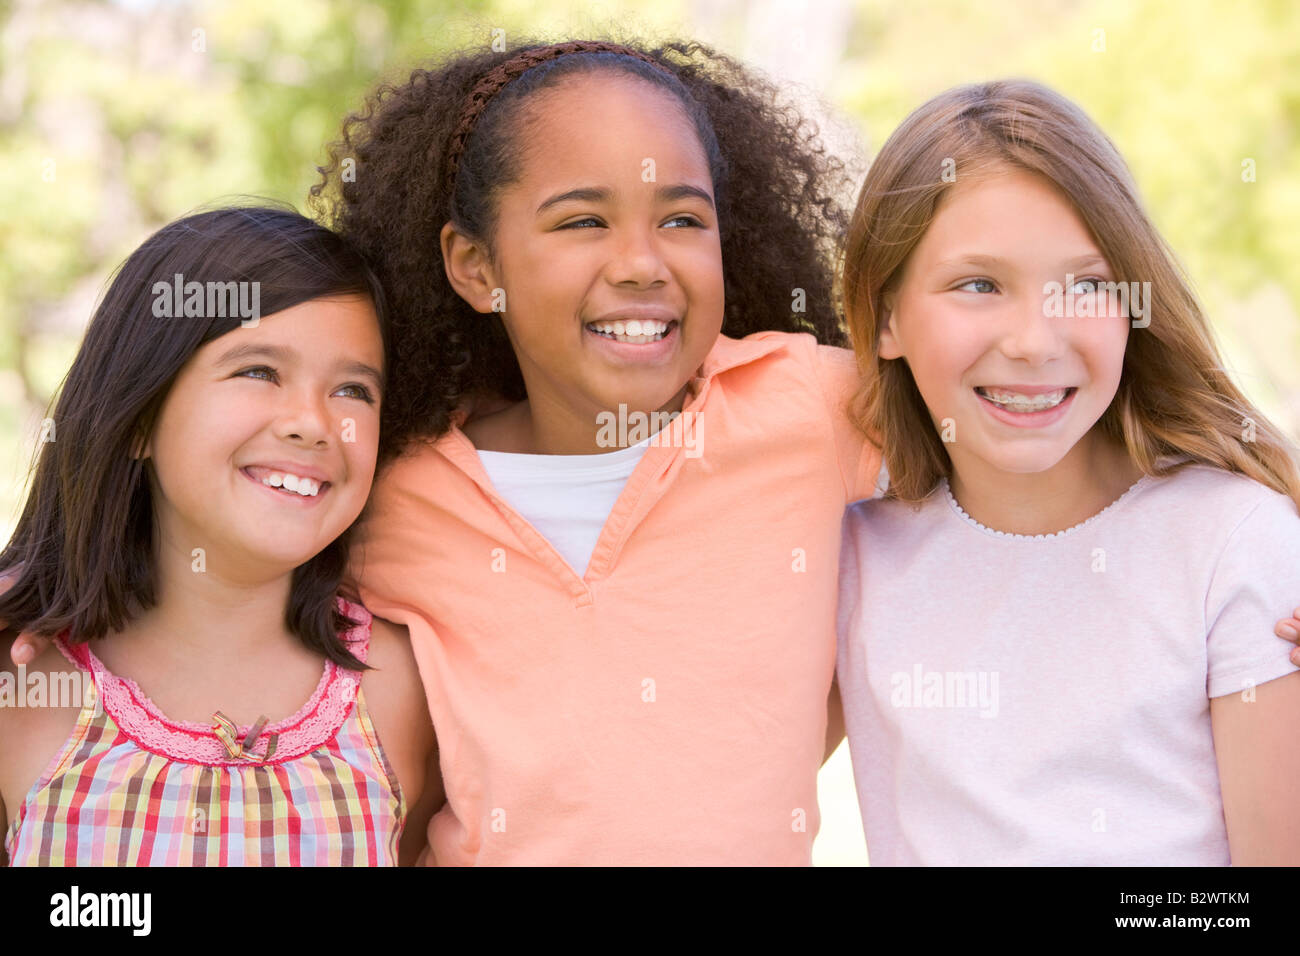 Three young girl friends outdoors smiling - Stock Image